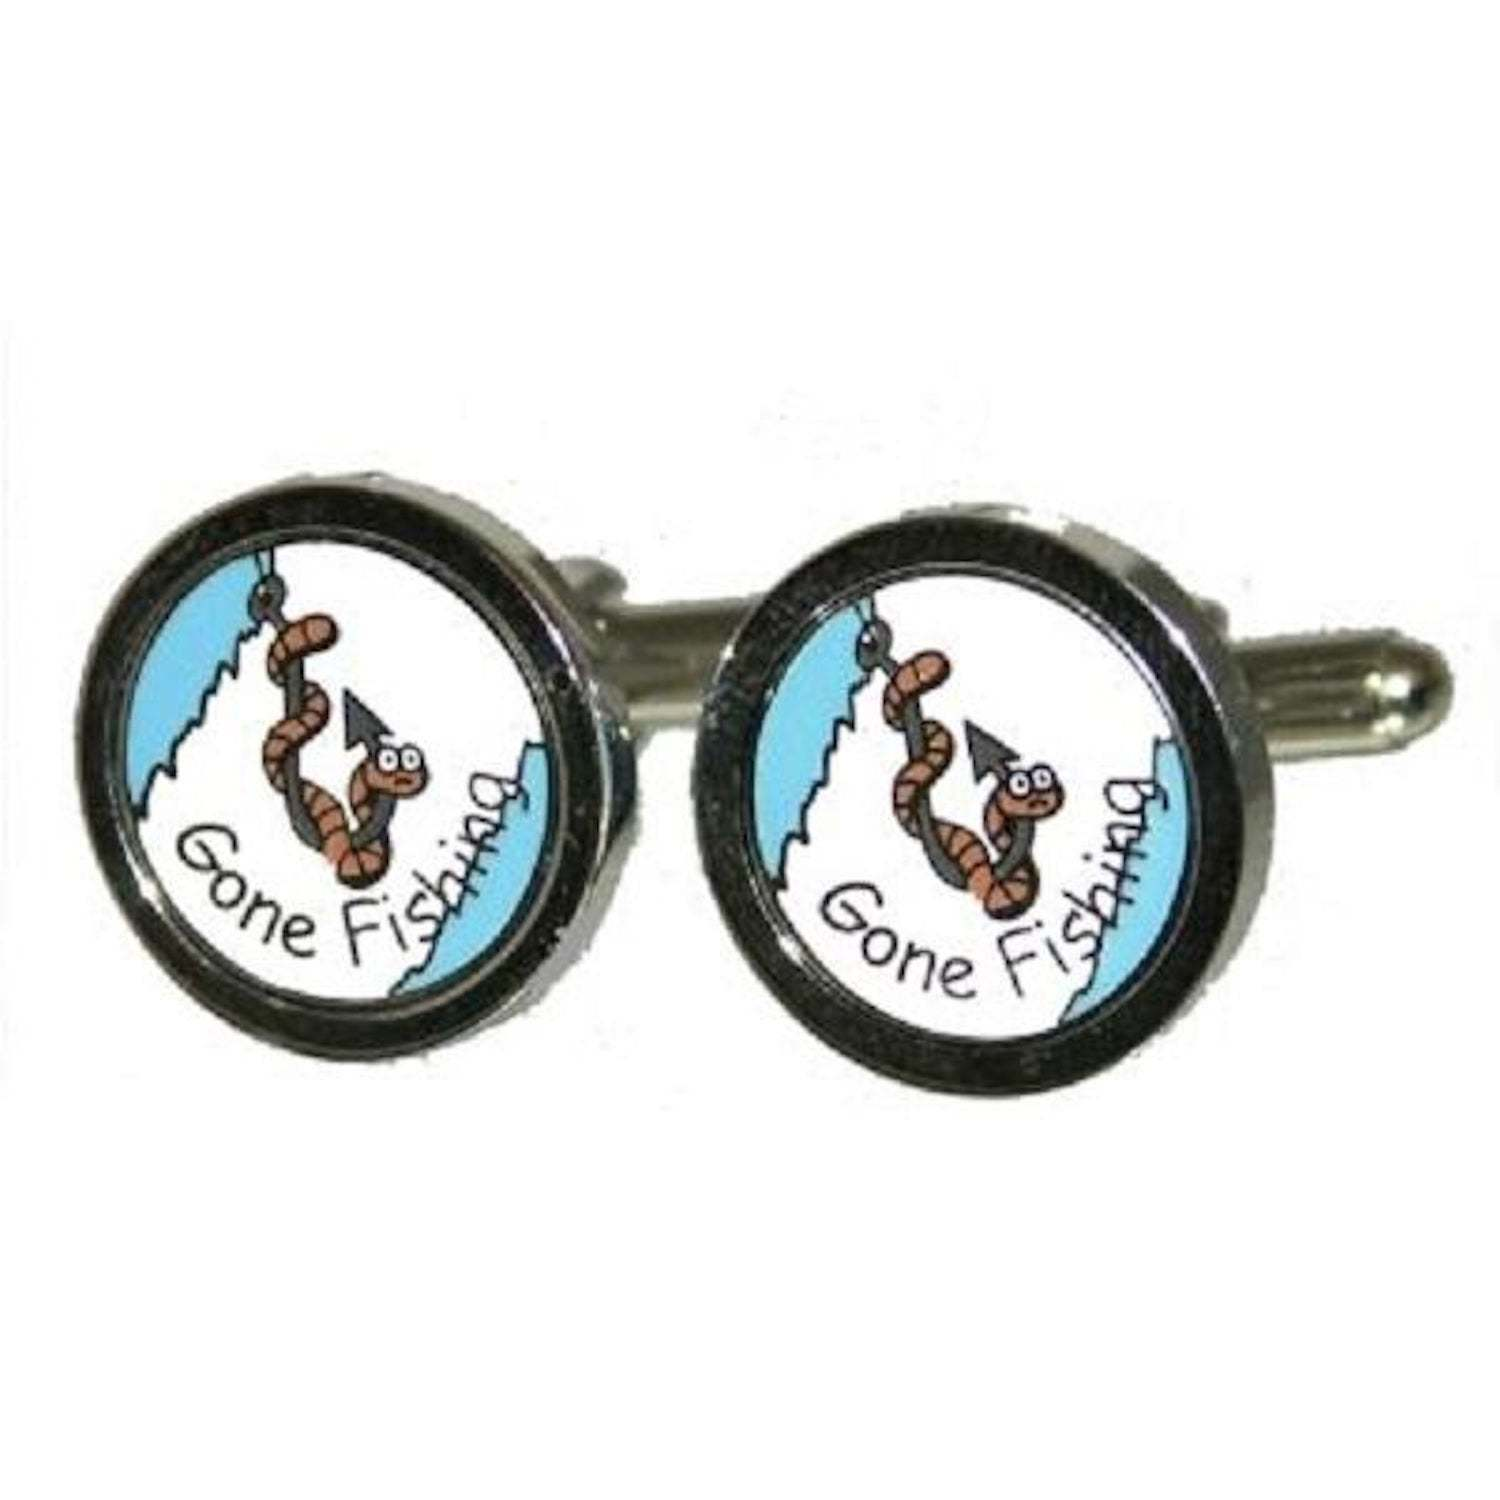 Round gone fishing Cufflinks, silver with  design on cufflinks gift boxed